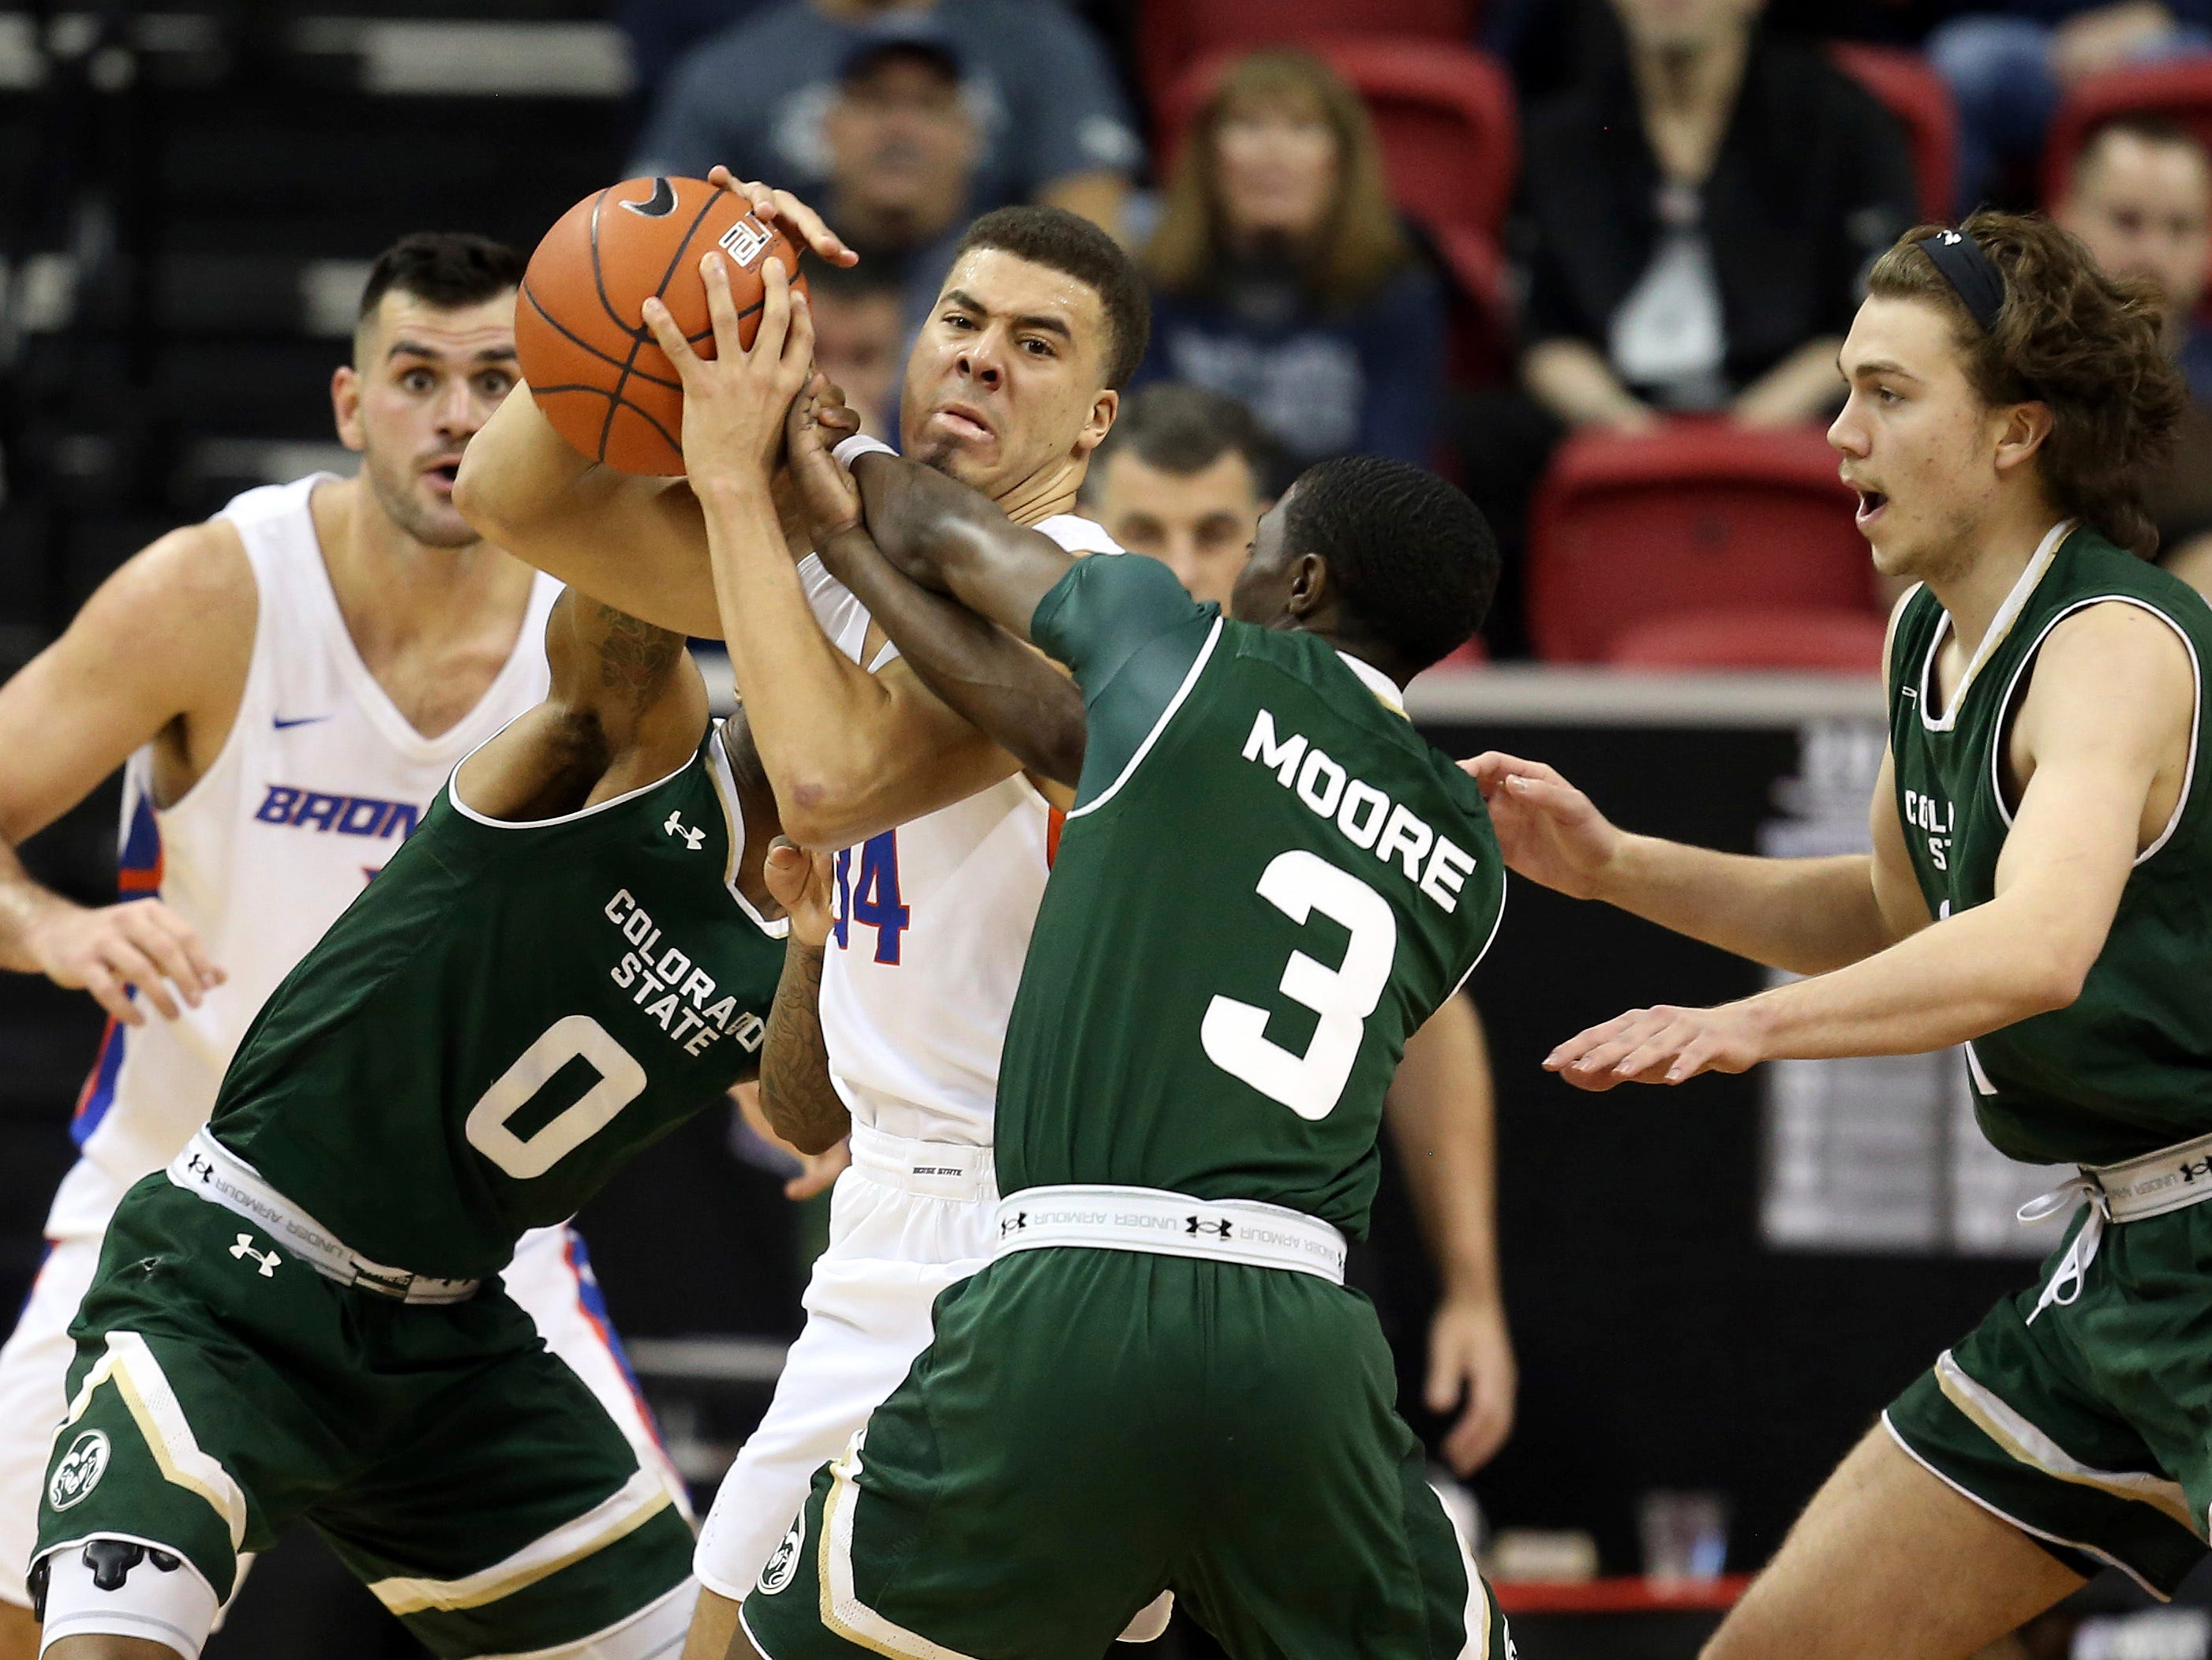 Colorado State's Kendle Moore (3) and Boise State's Alex Hobbs (34) struggle for a loose ball during the second half of an NCAA college basketball game in the Mountain West Conference tournament Wednesday, March 13, 2019, in Las Vegas.